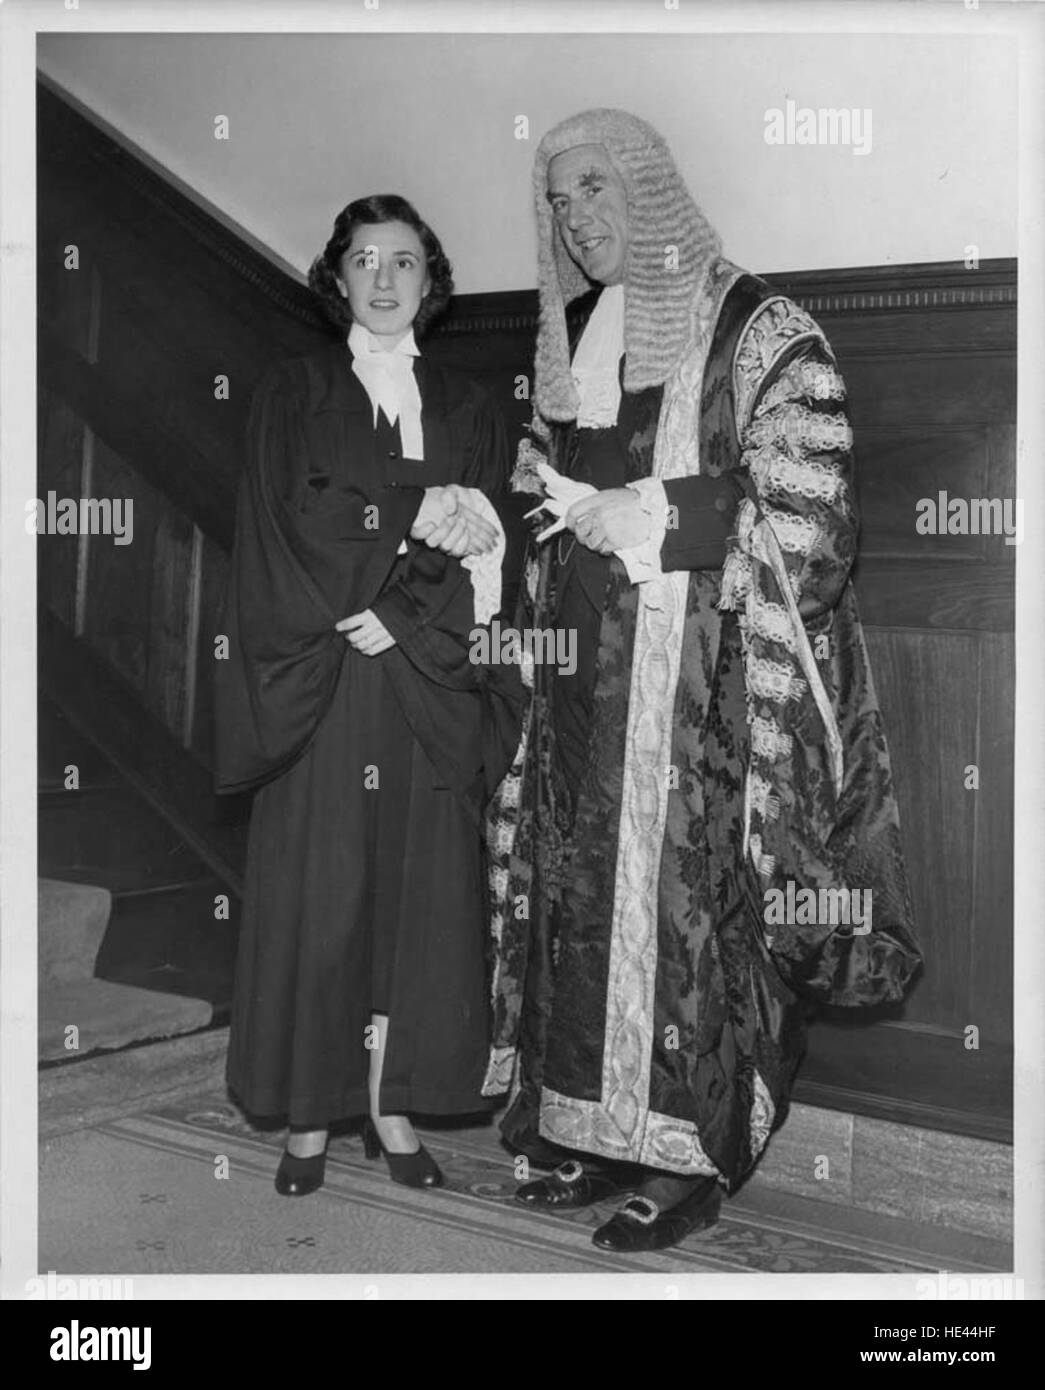 Photograph of Anne Levine and the Rt. Hon. Sir Raymond Evershed - Stock Image